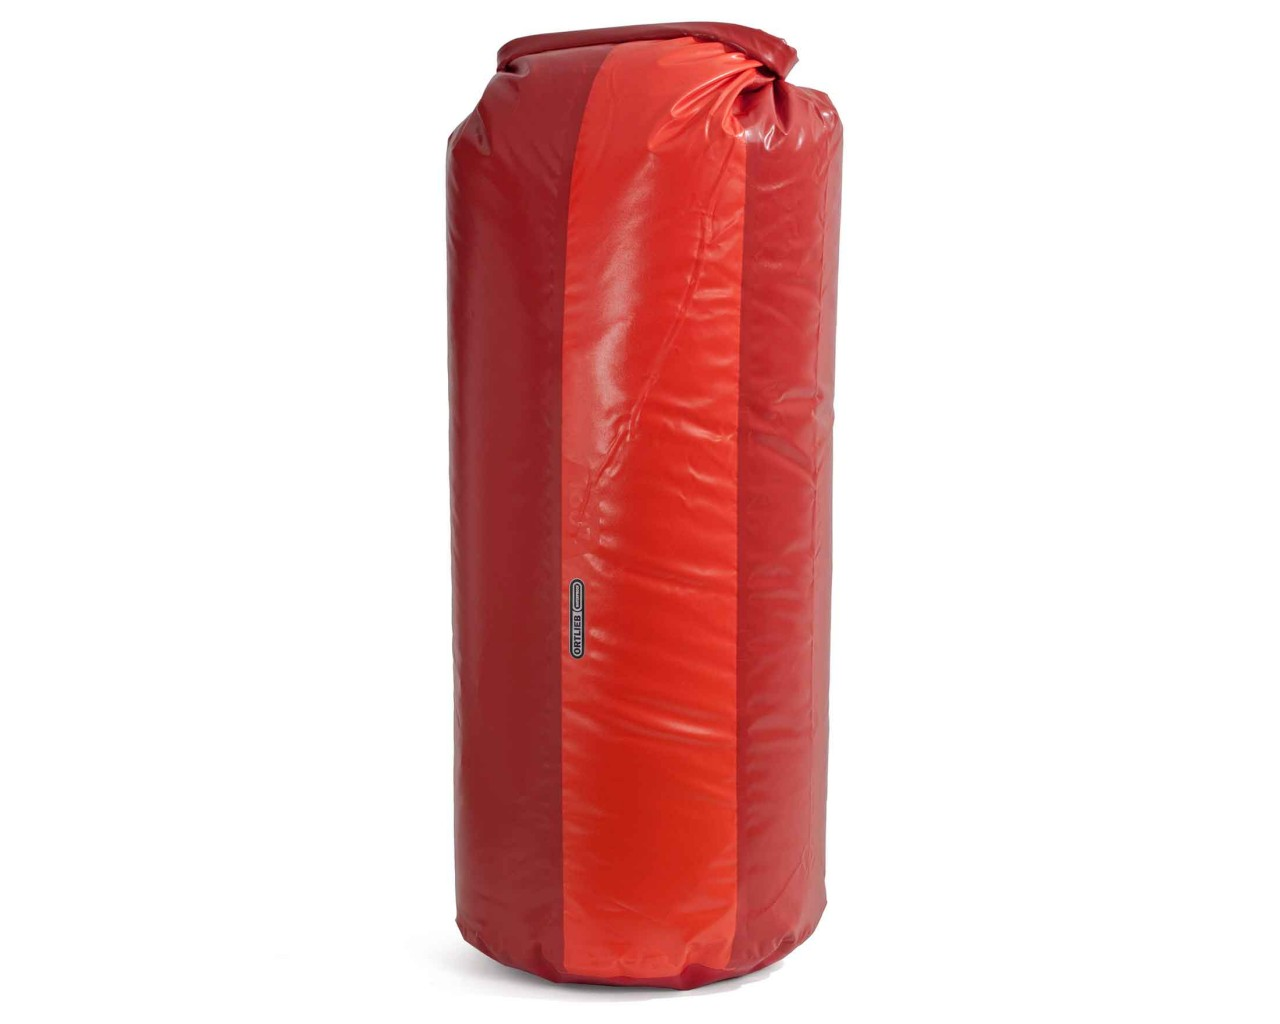 Ortlieb dry bag PD350 - 109 liter   cranberry-signal red